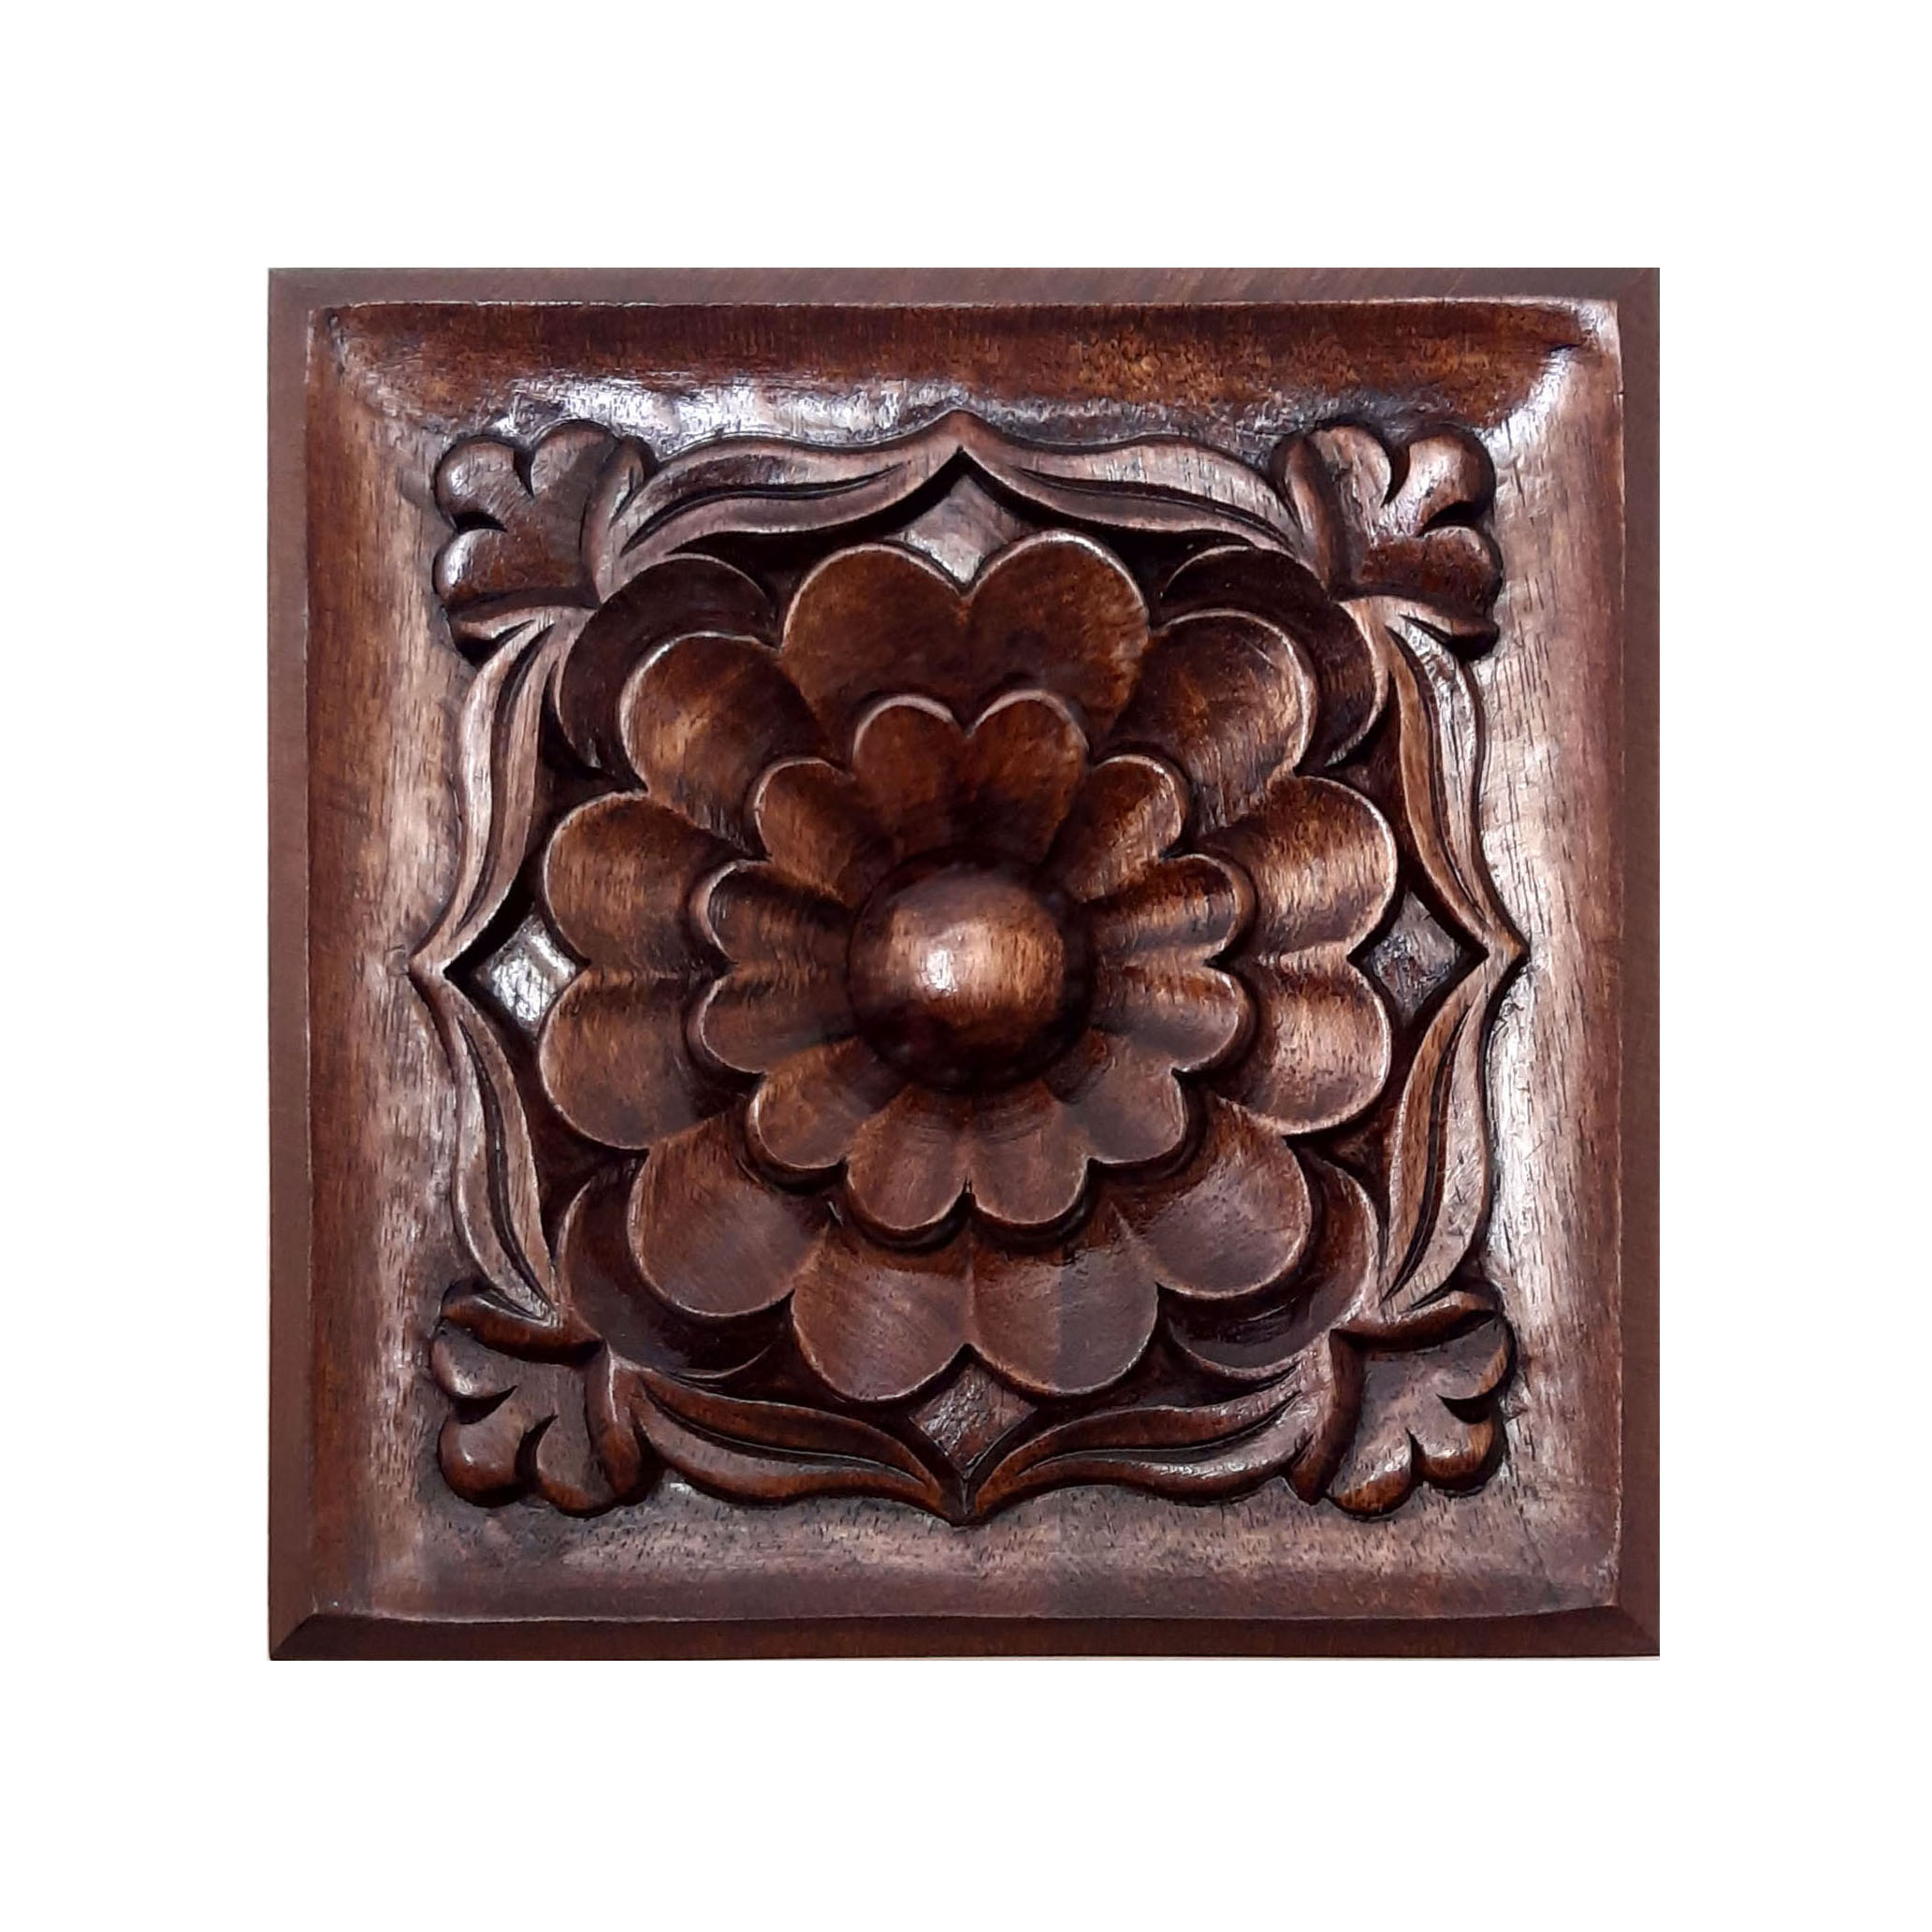 Handmade decorative wooden carving flower design tableau, lotus model, code 2